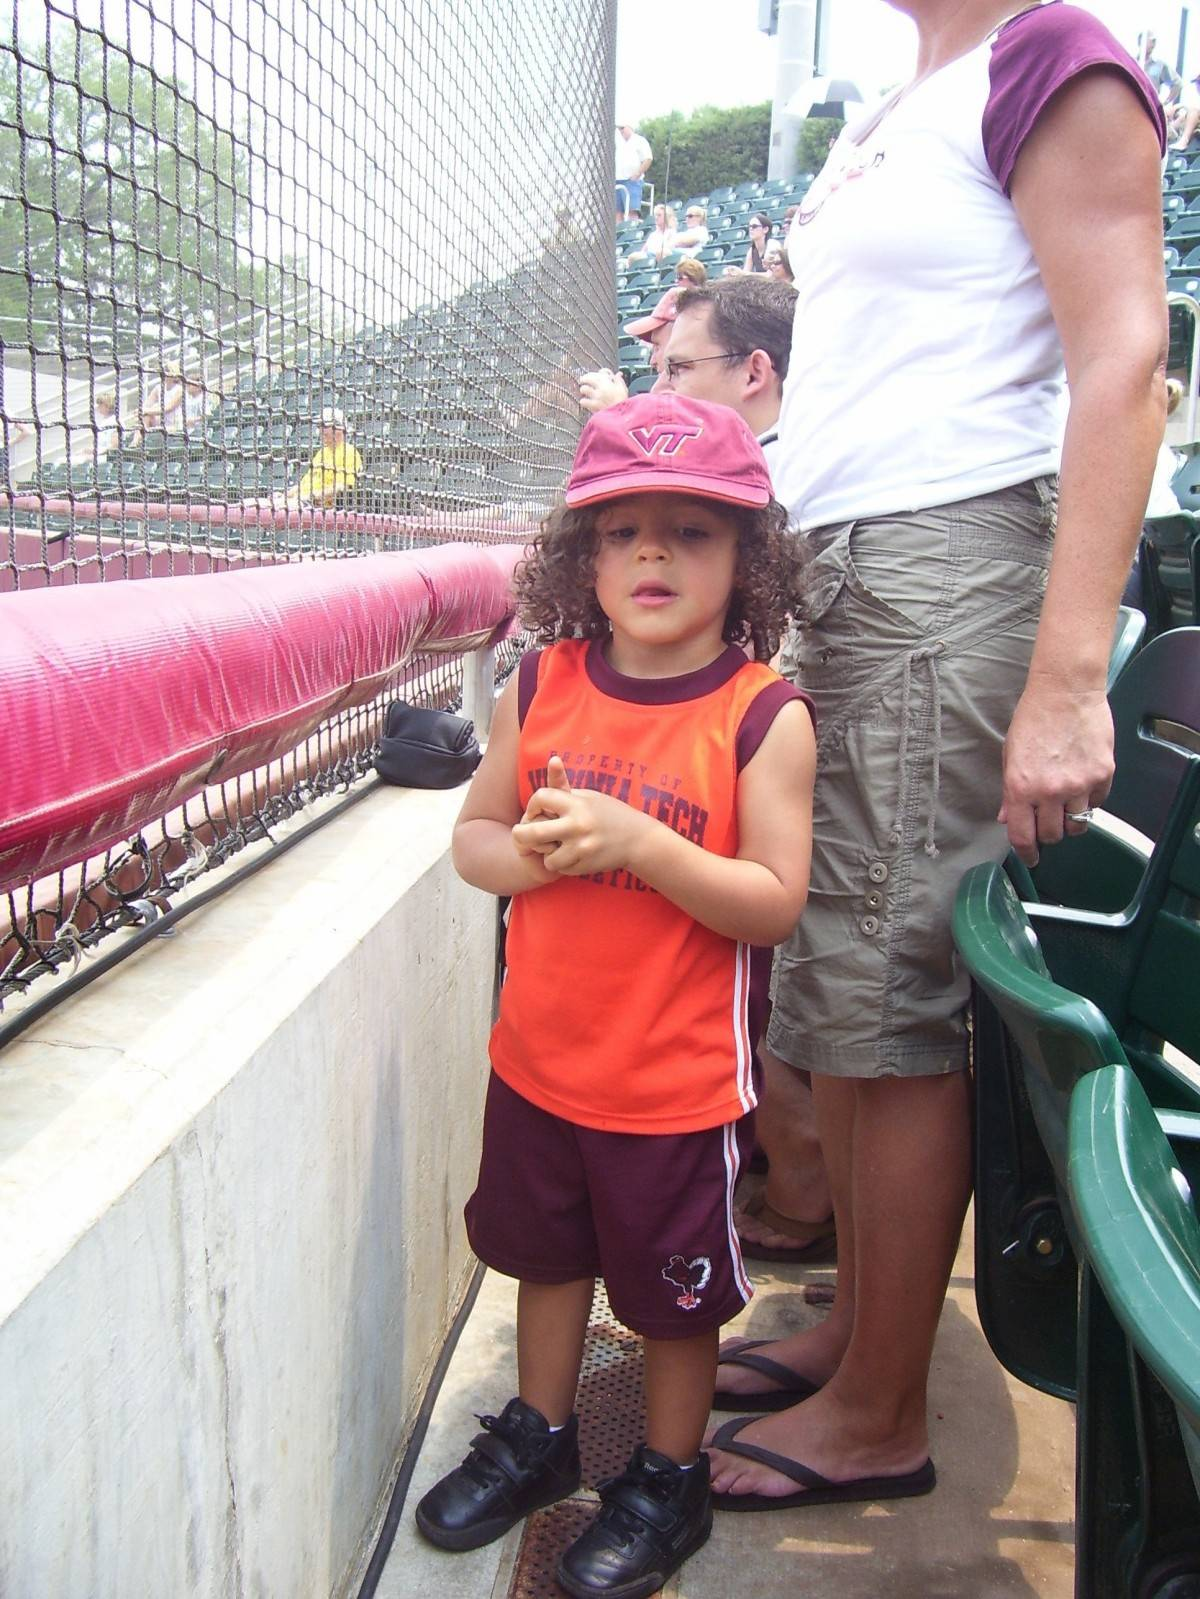 A young Virginia Tech fans shows that the Hokies are No. 1!